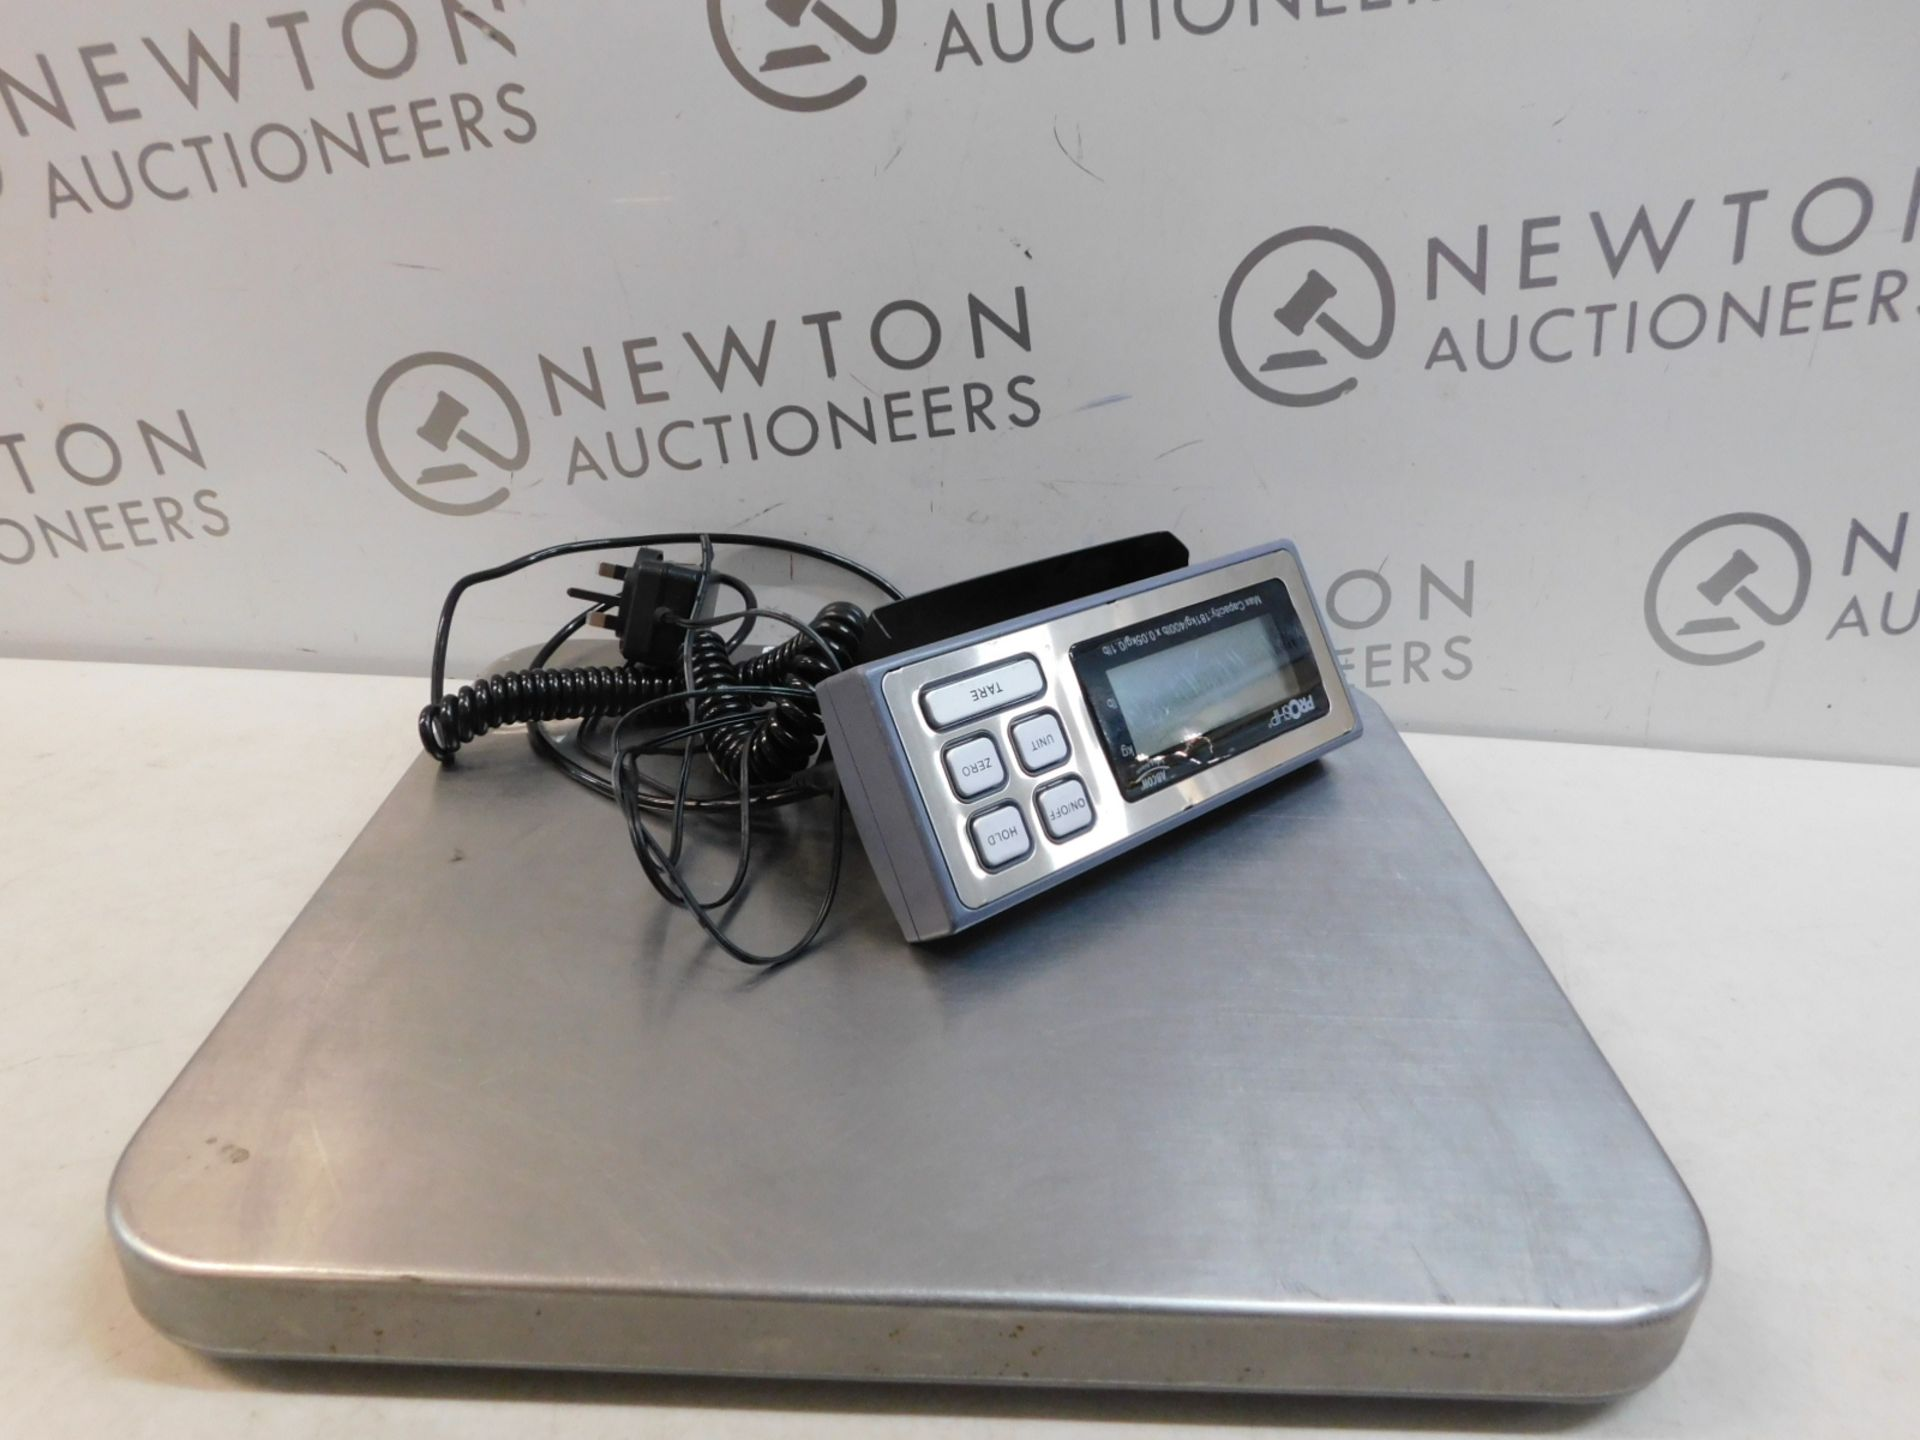 Lot 194 - 1 ABCON PROSHIP LARGE HEAVY DUTY ELECTRONIC SCALE (181KG/ 400LBS CAPACITY) RRP £129.99